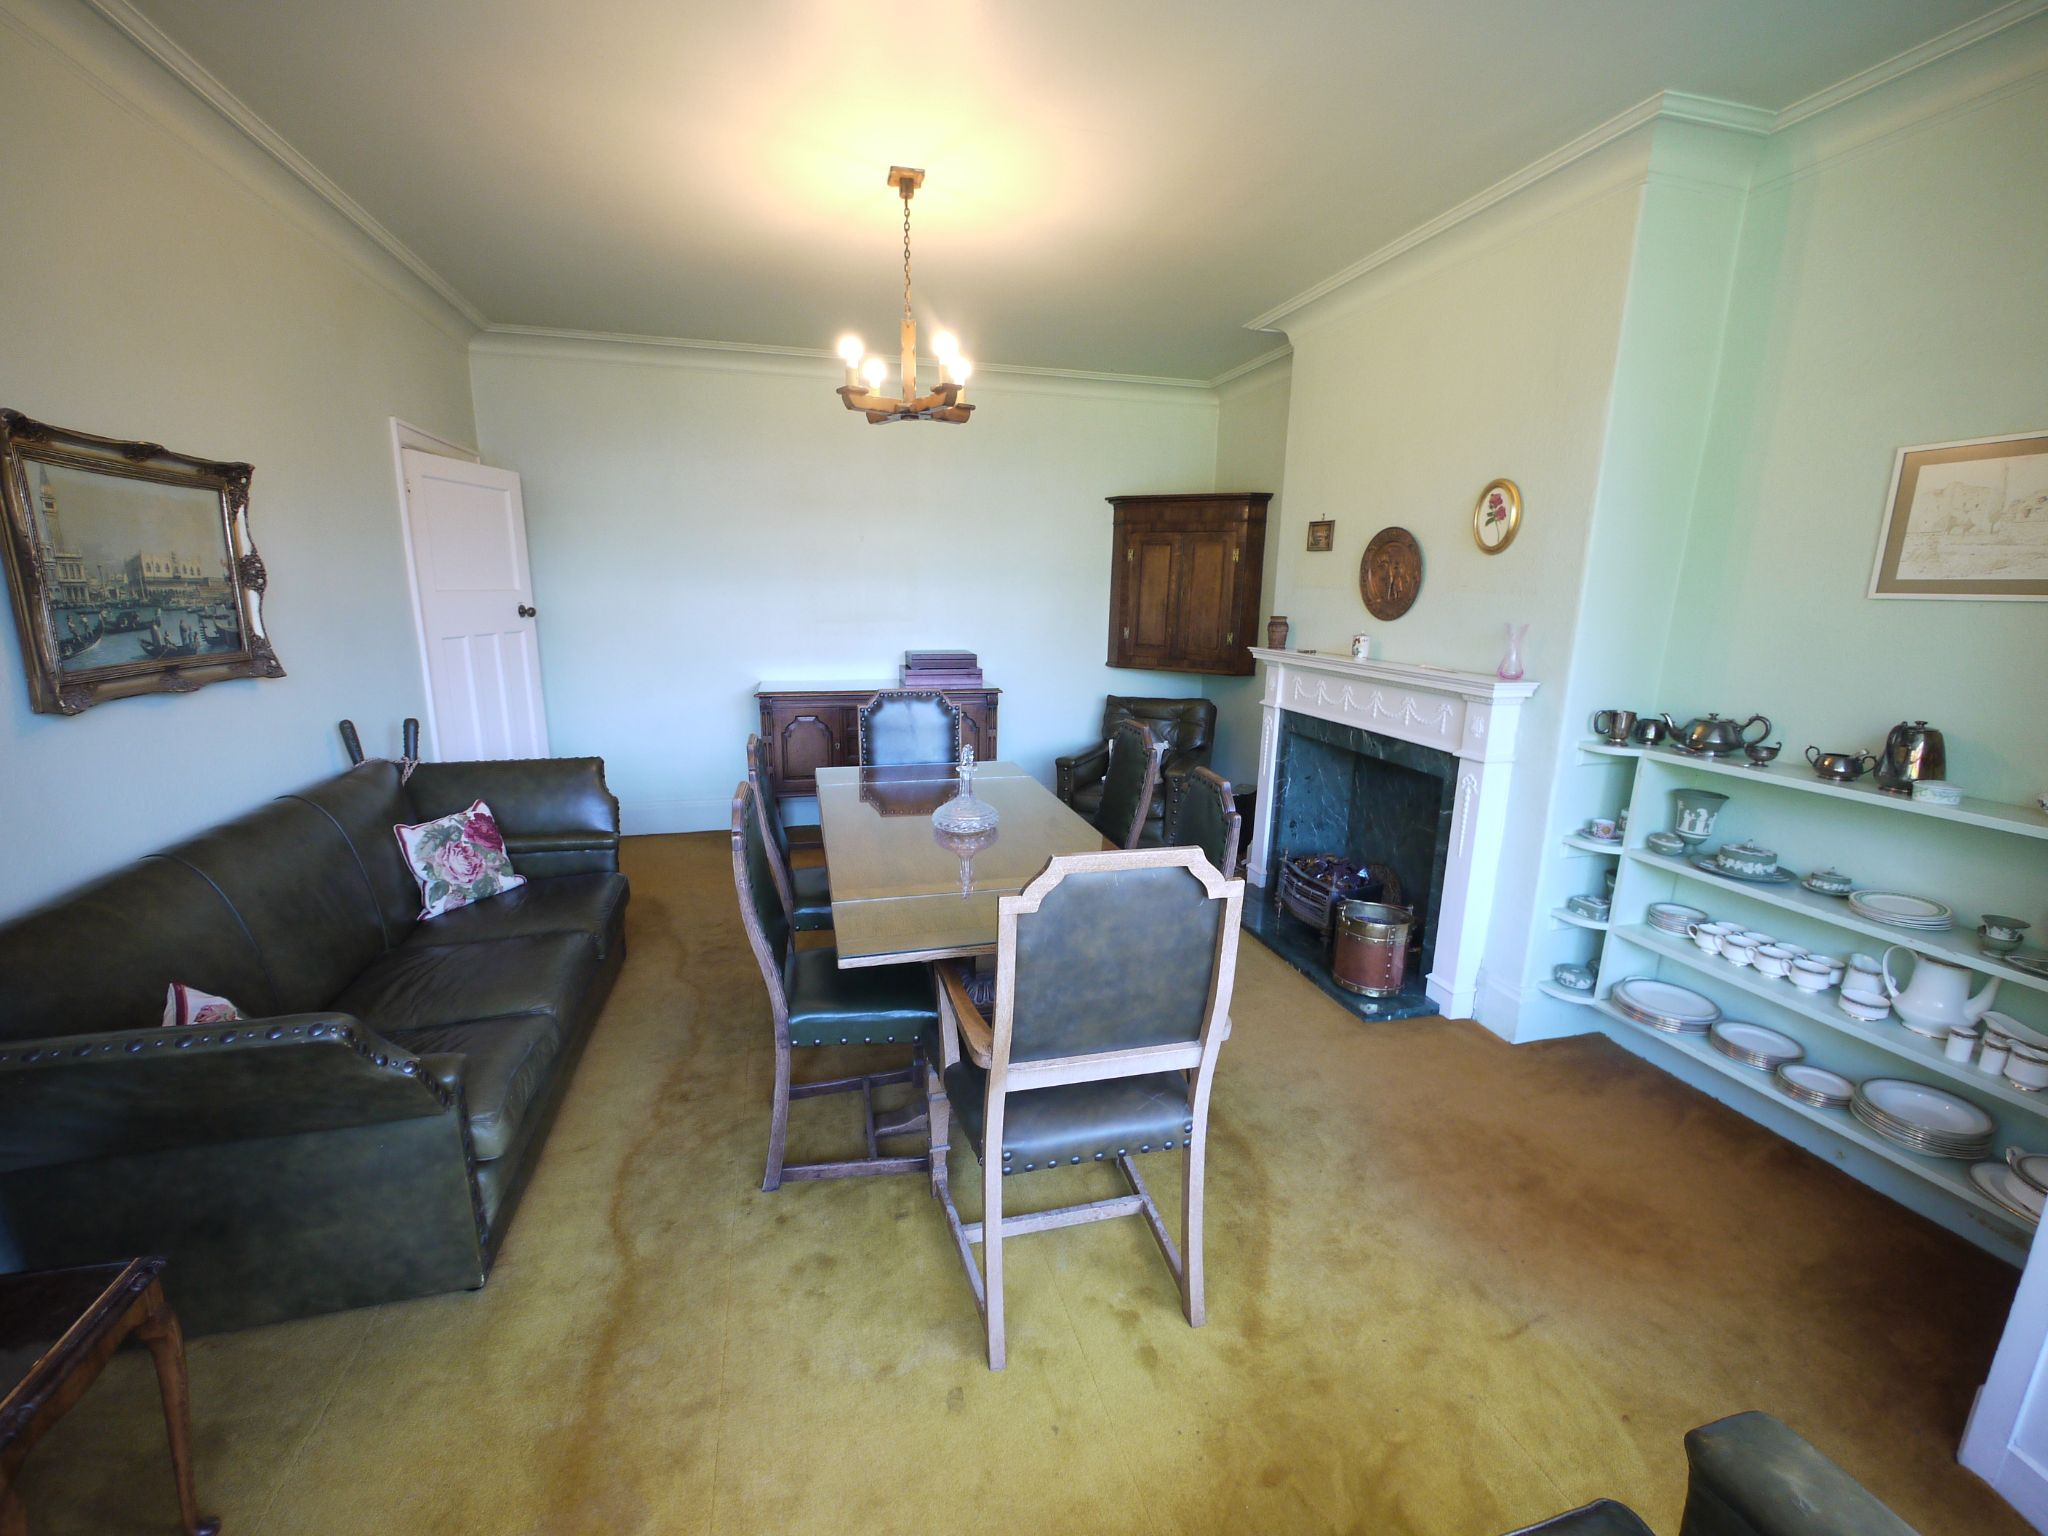 4 bedroom semi-detached house SSTC in Brighouse - Dining Room.